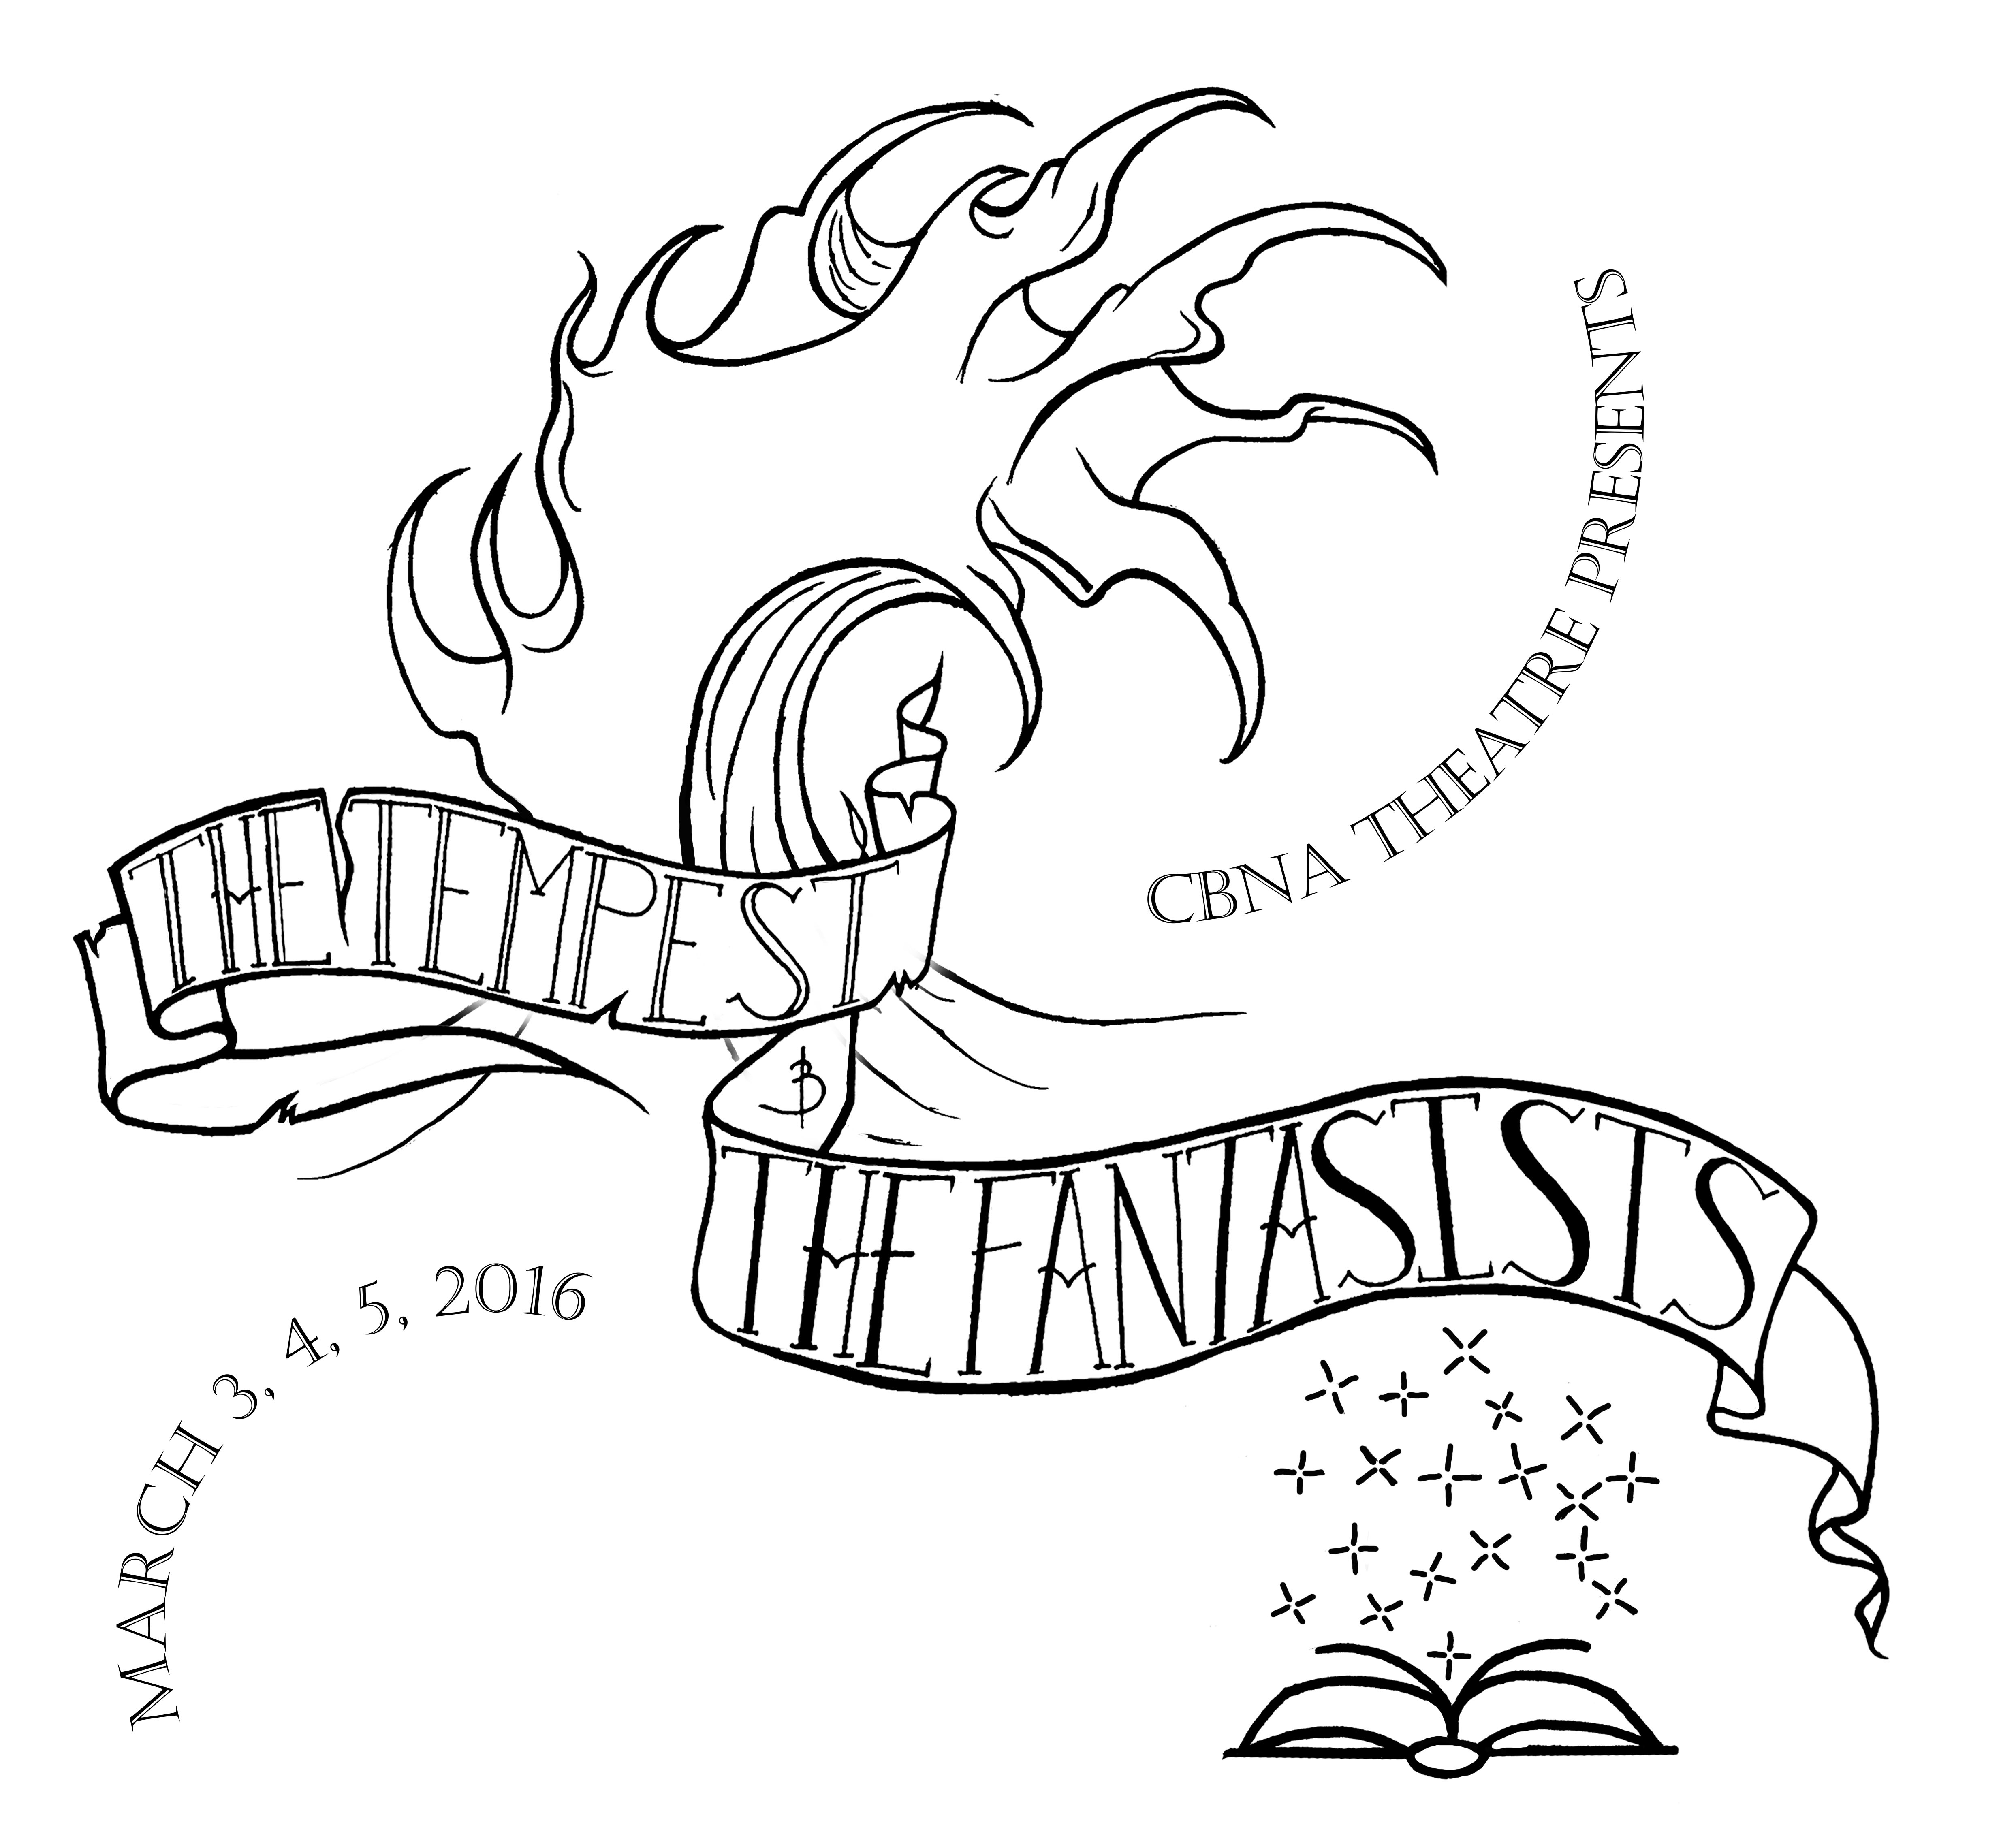 CBNA Theatre to Present The Fantasists and The Tempest